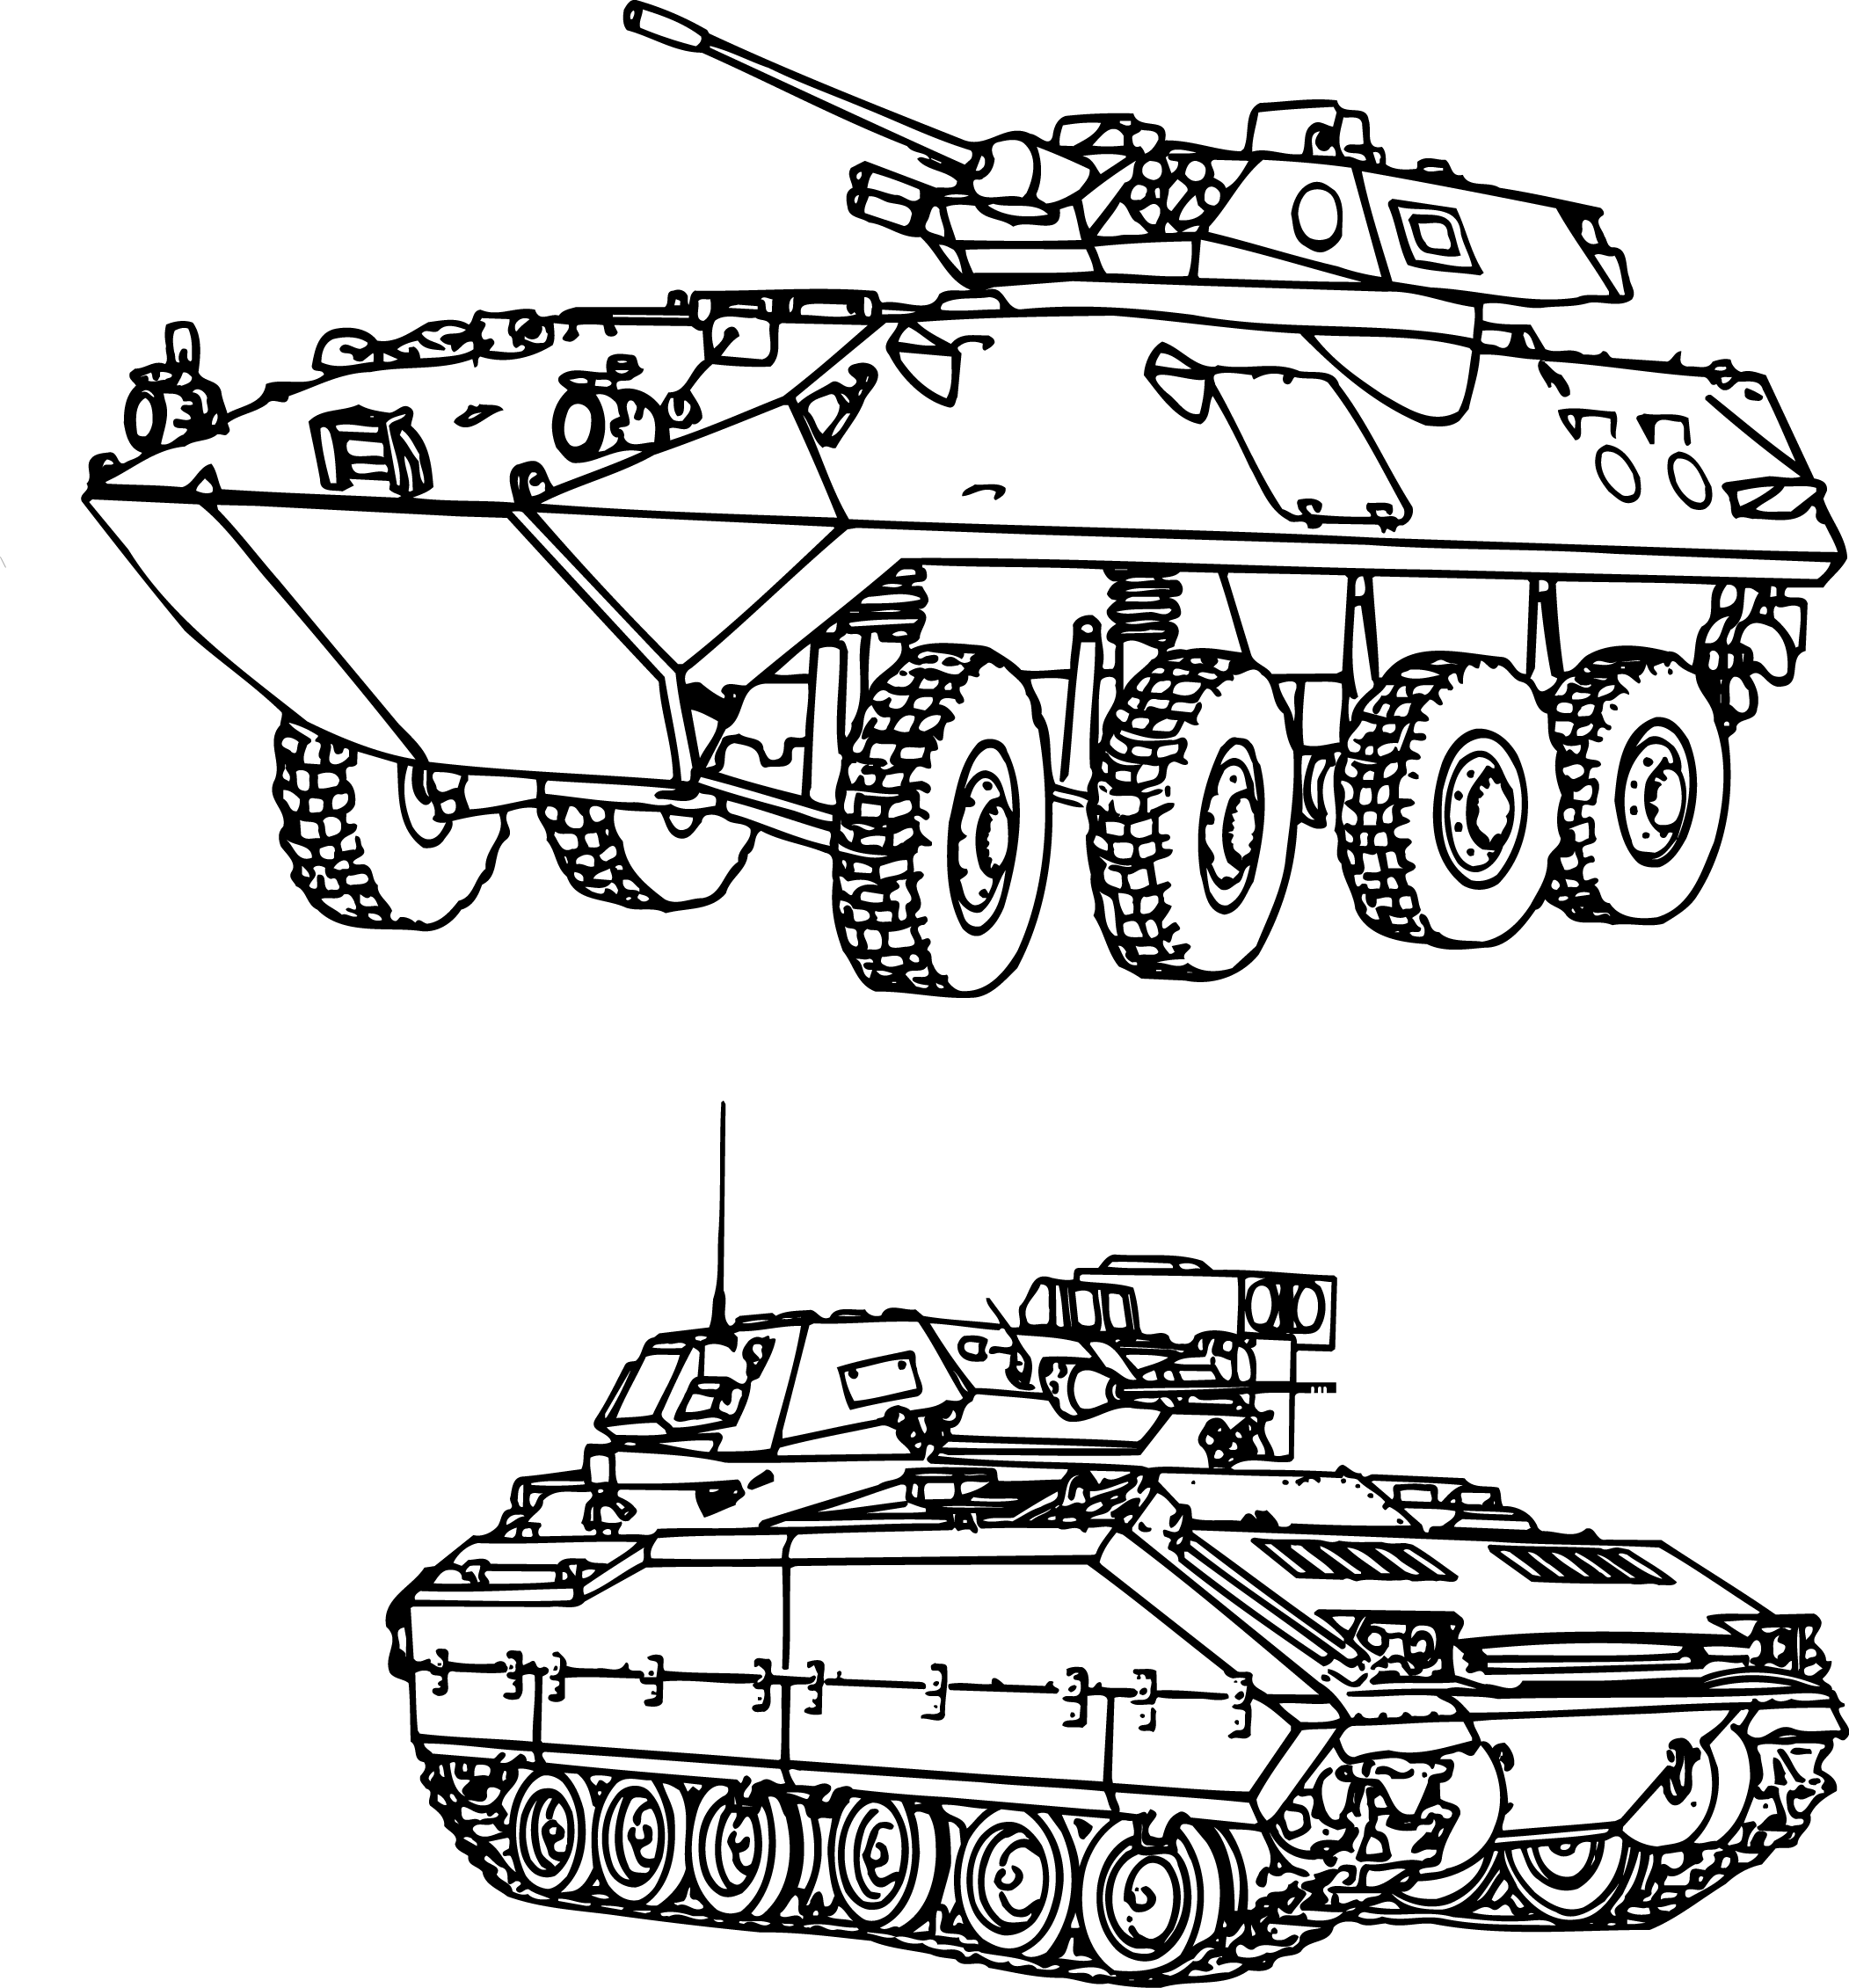 Weapon drawing hand. Tank military painted tanks